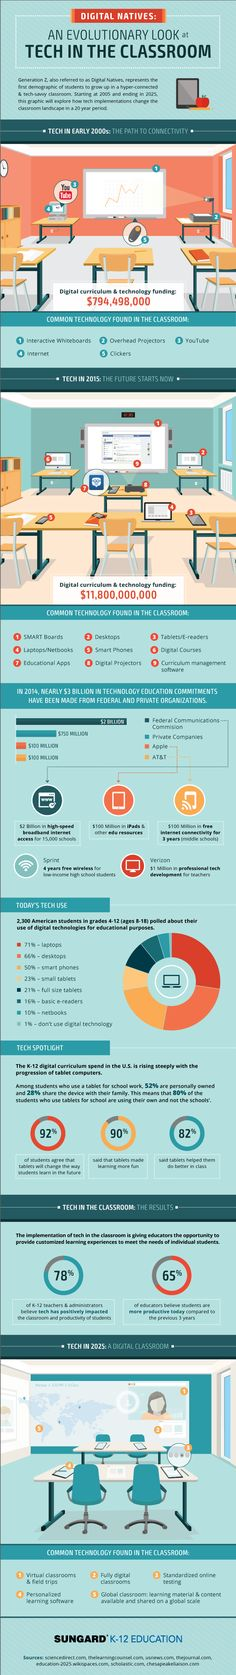 An Evolutionary Look at Tech in the Classroom #infographic #Technology #Education